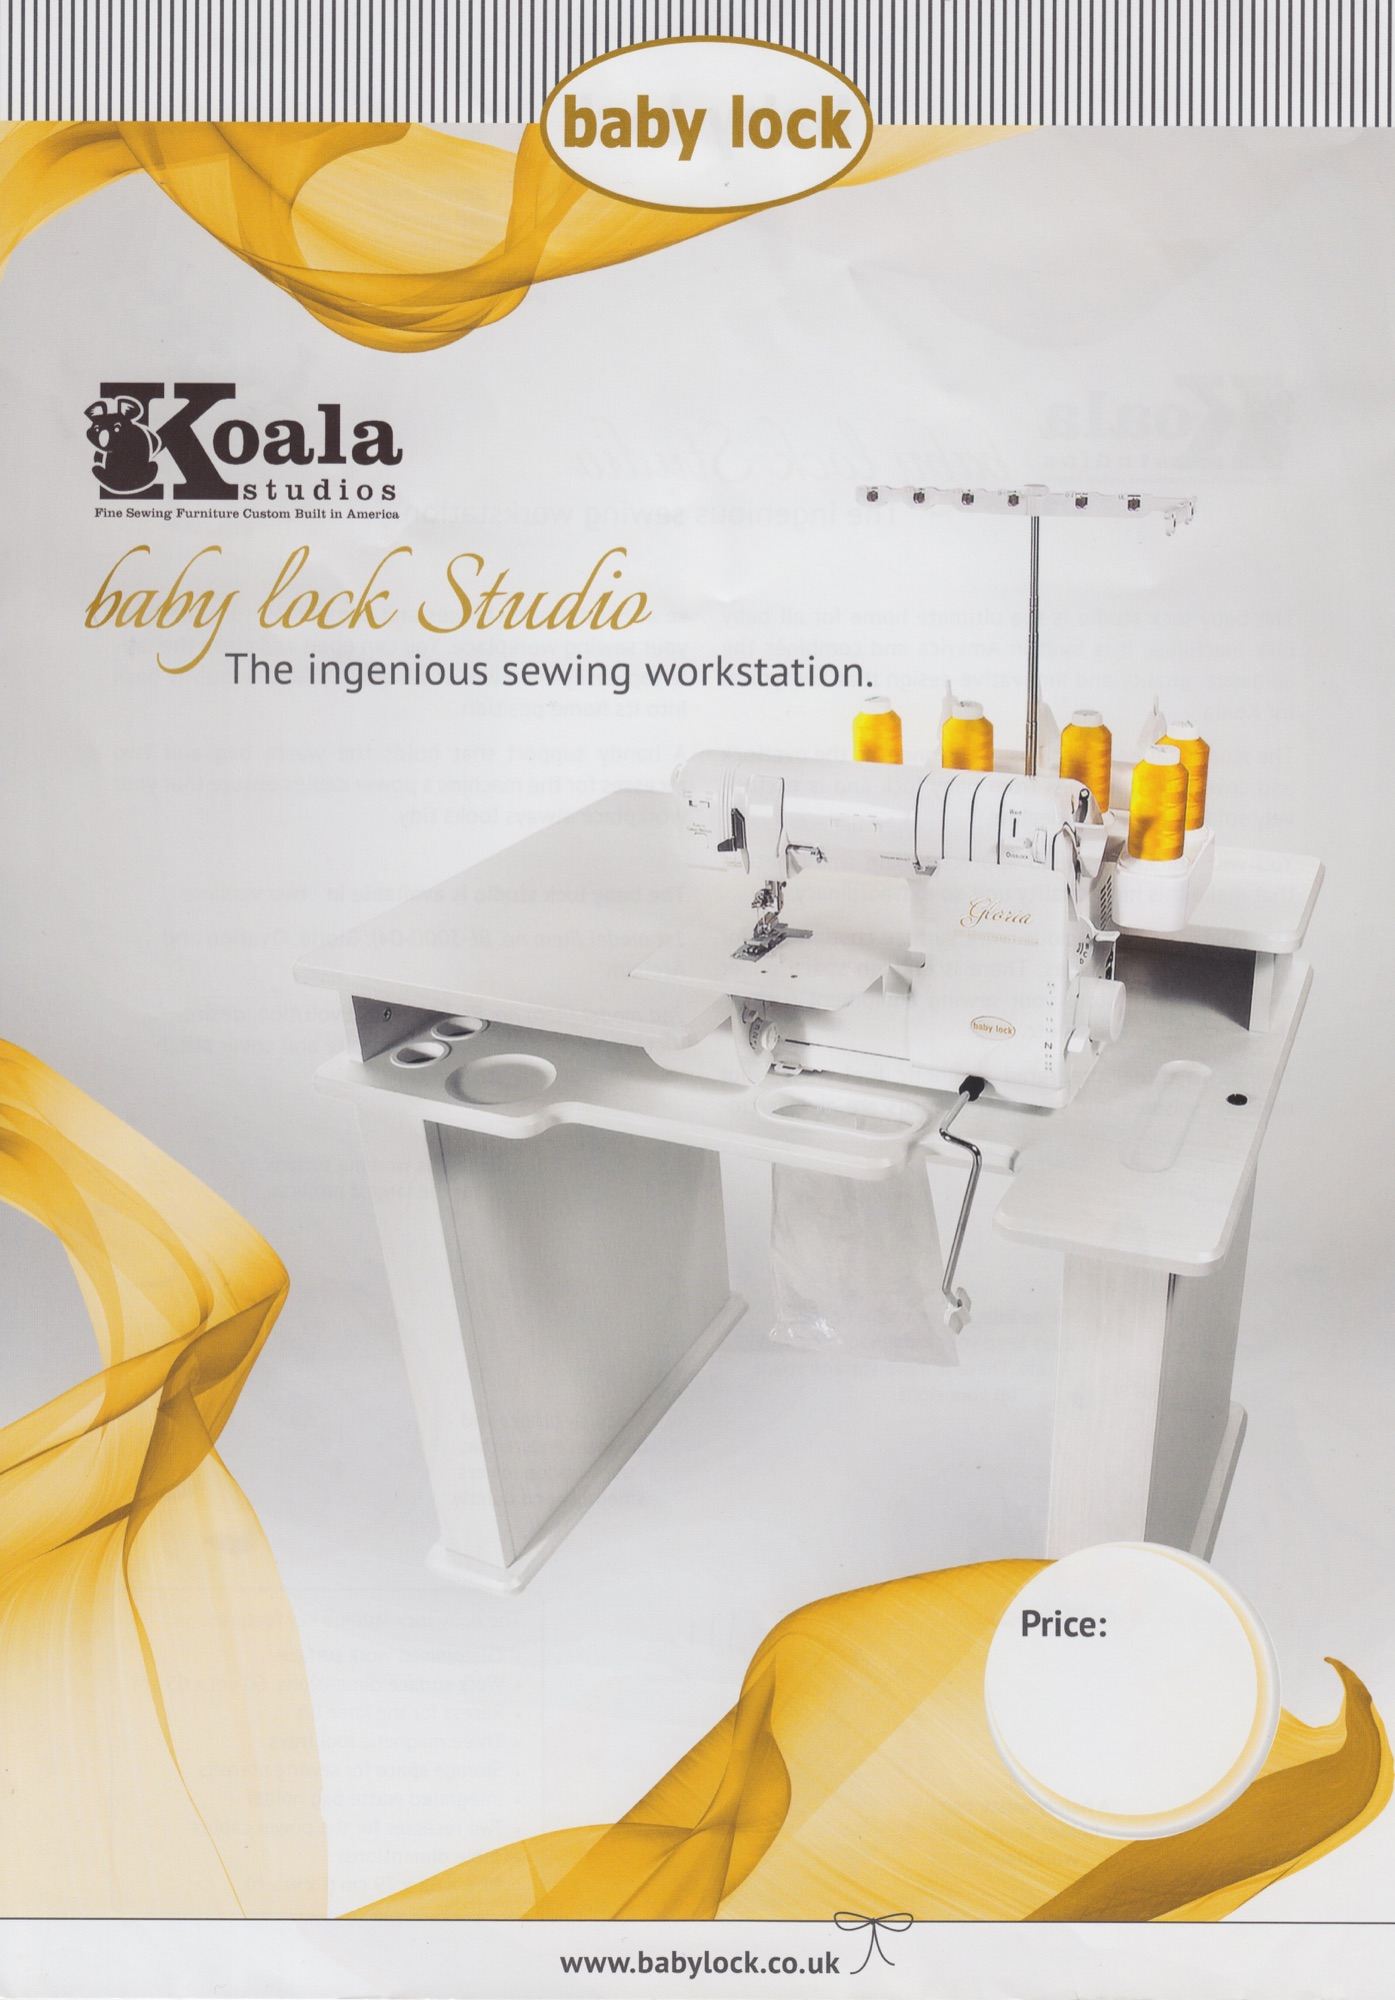 baby lock Koala studio work station